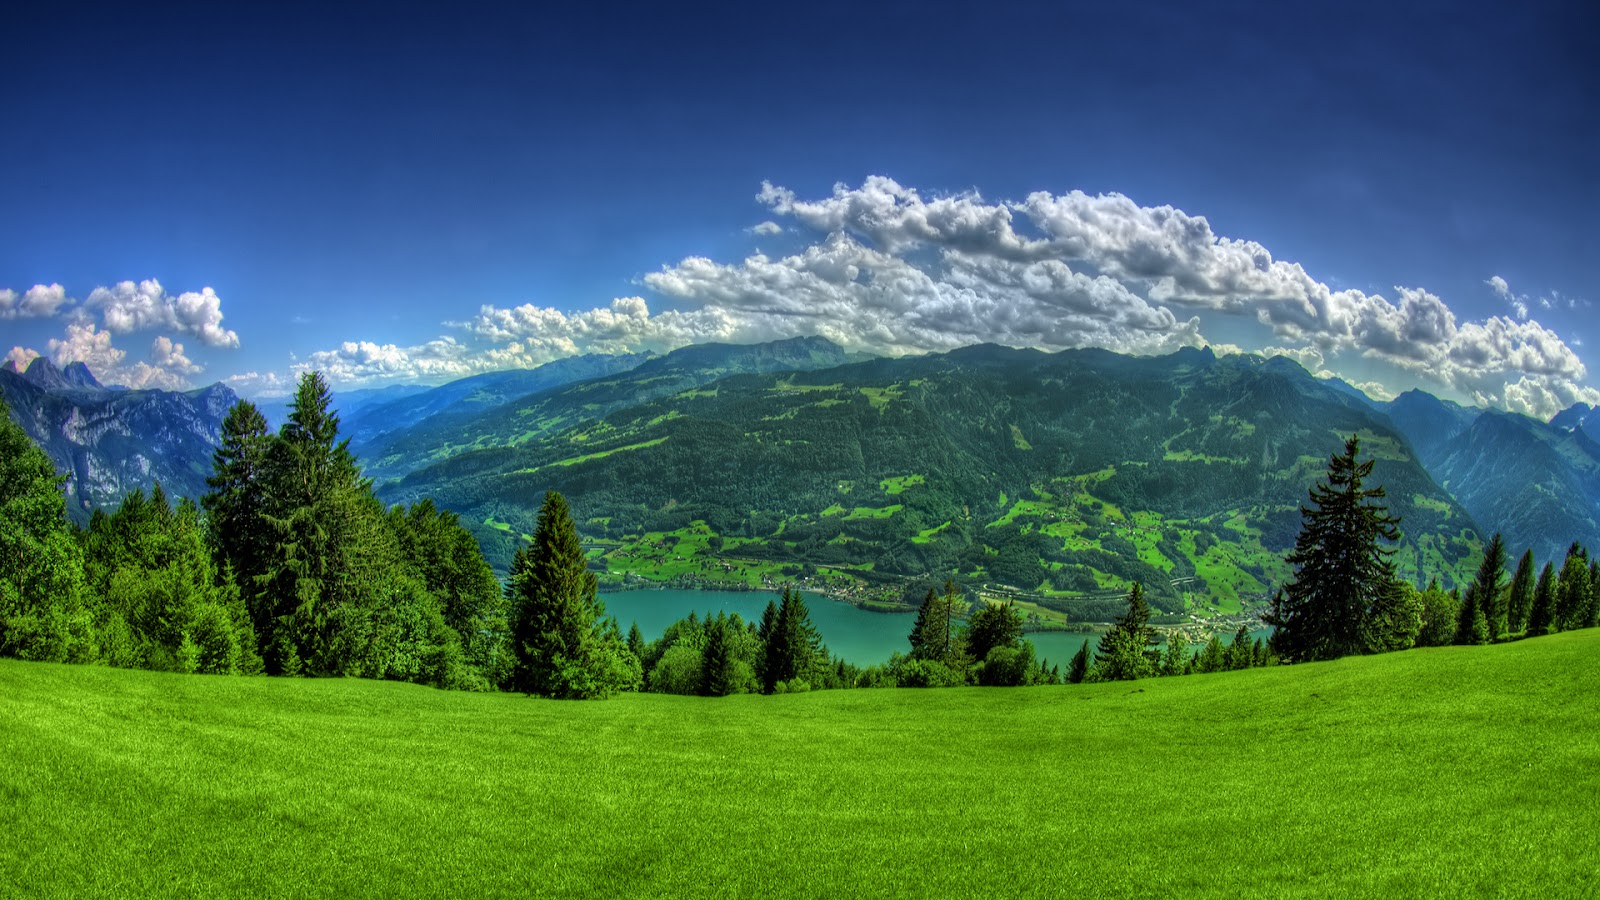 http://2.bp.blogspot.com/-KbNNMKZO_8w/T_jp8ycvEfI/AAAAAAAAANk/swe2F9jb7e8/s1600/lush-green-grass-mountain-beautiful-nature-photos-for-laptop-desktop-hd.jpg